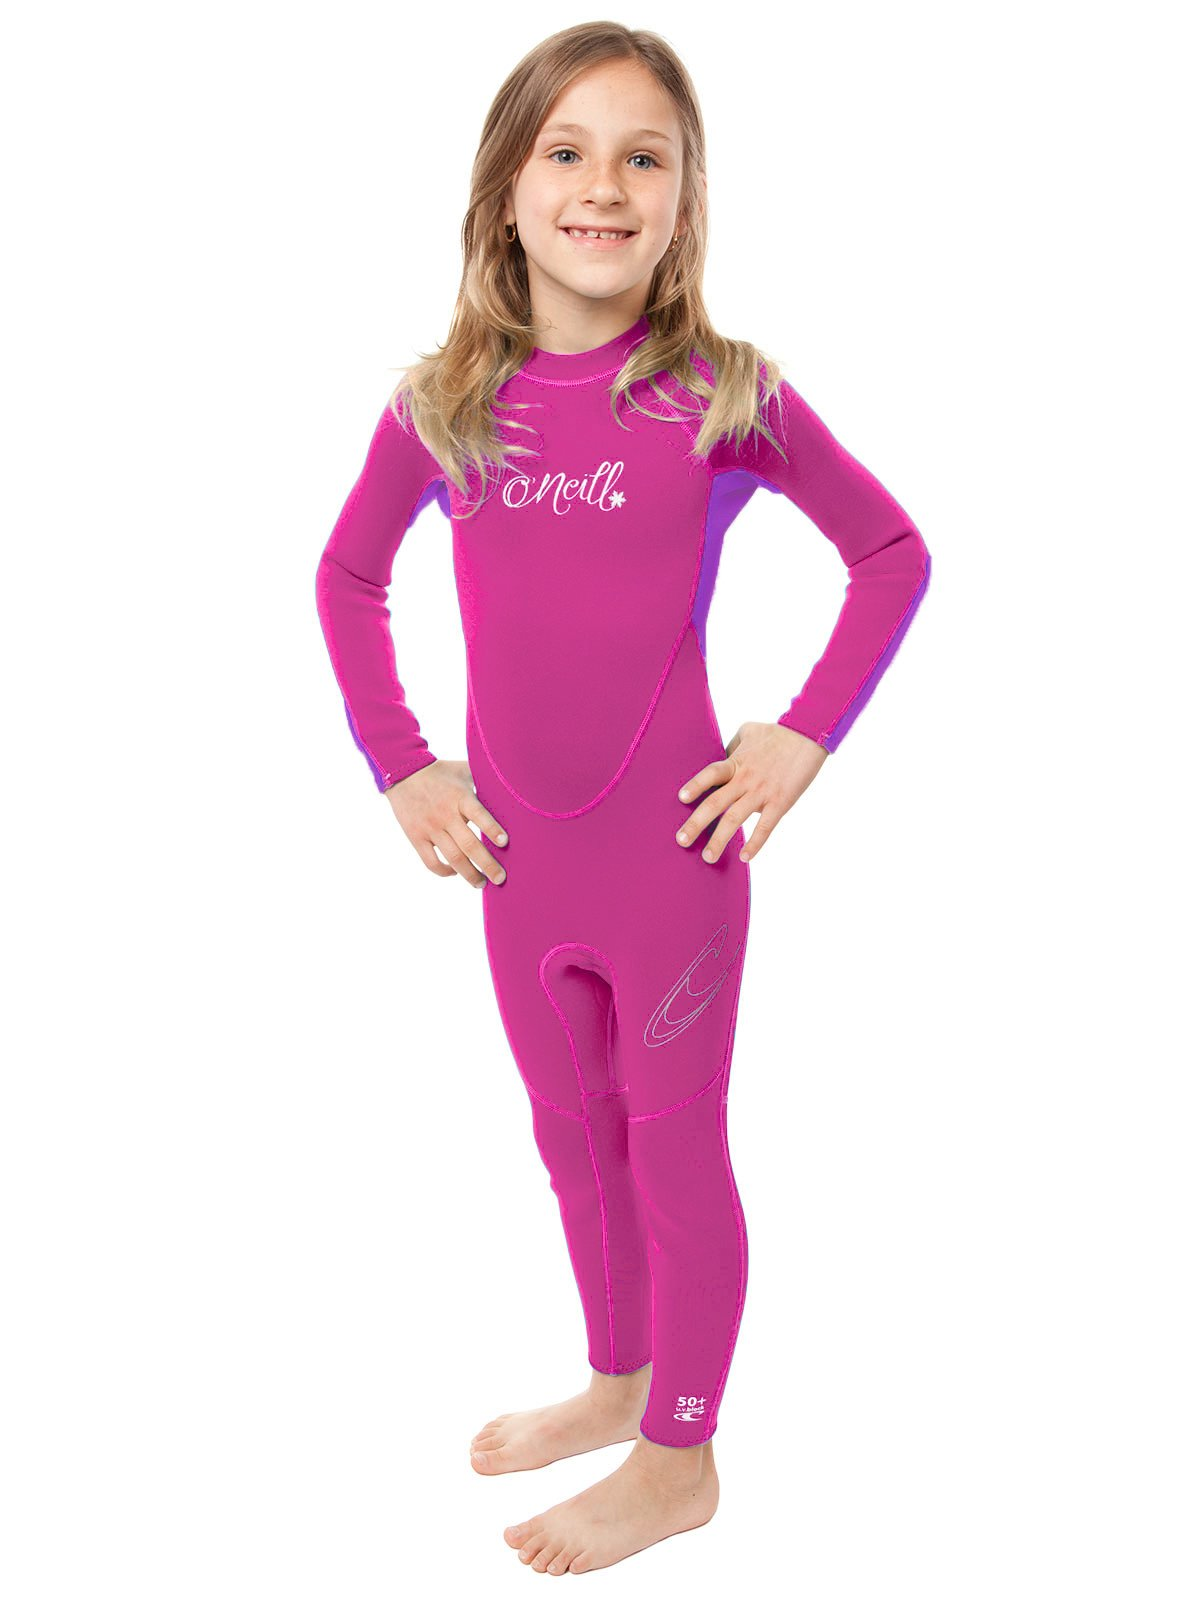 O'Neill Reactor toddler full wetsuit Youth 4 Punk pink/ultraviolet (4629G) by O'Neill Wetsuits